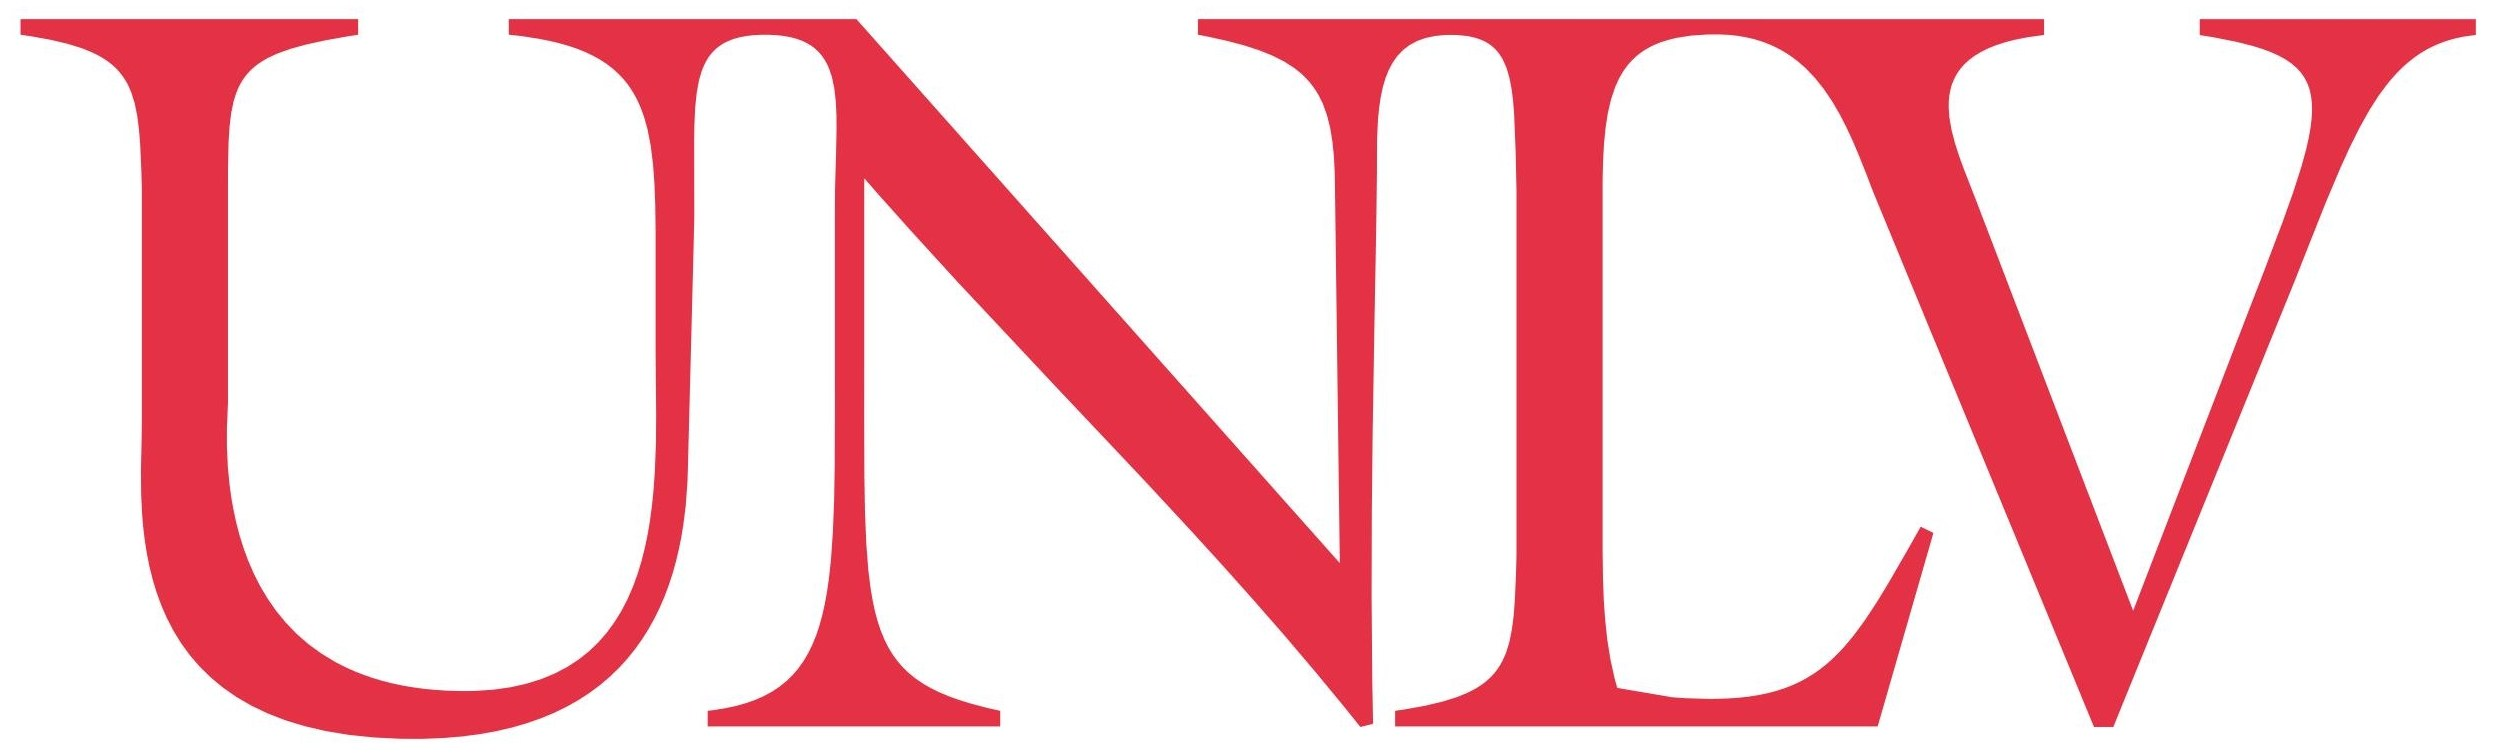 University-of-Nevada-Las-Vegas-UNLV-Logo